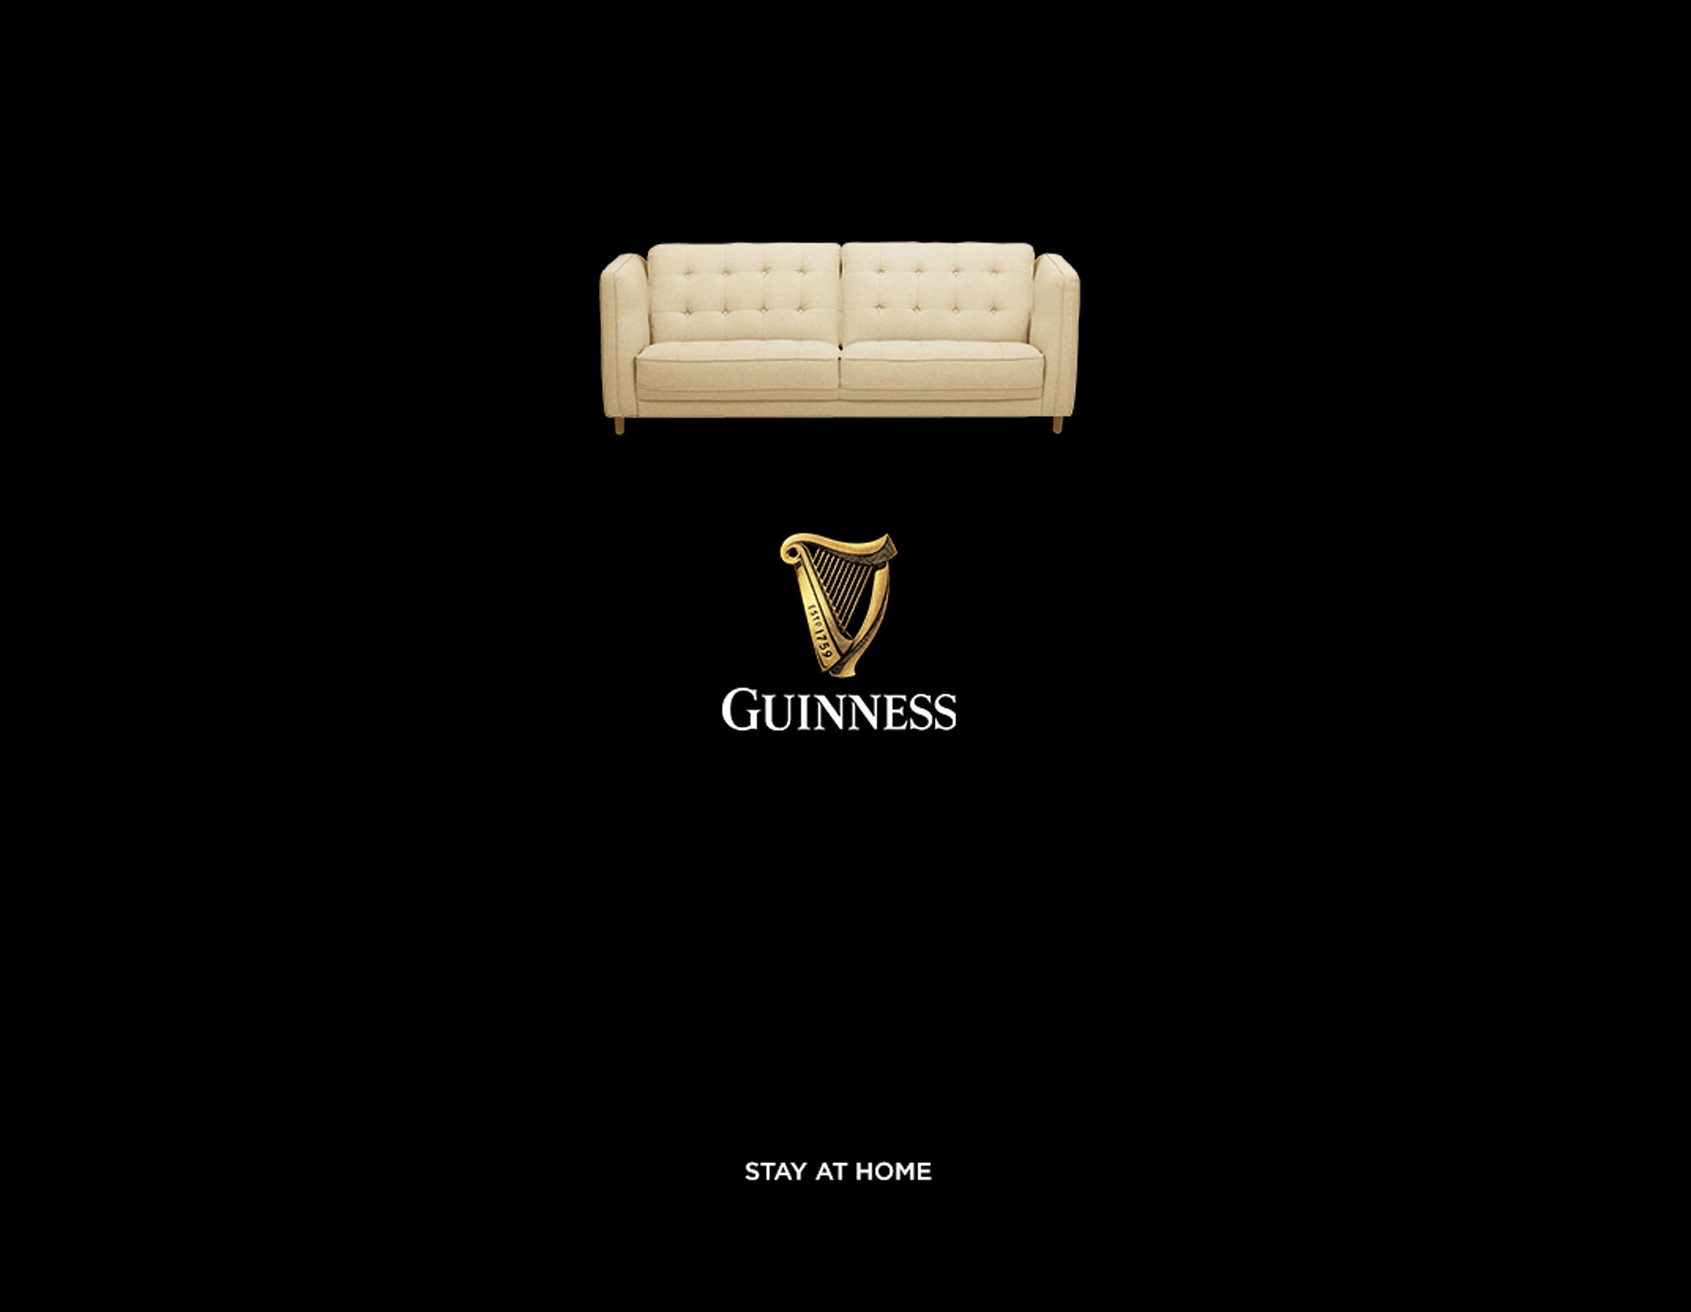 Social Distancing And Staying Home Encouraged By Ikea And Guinness